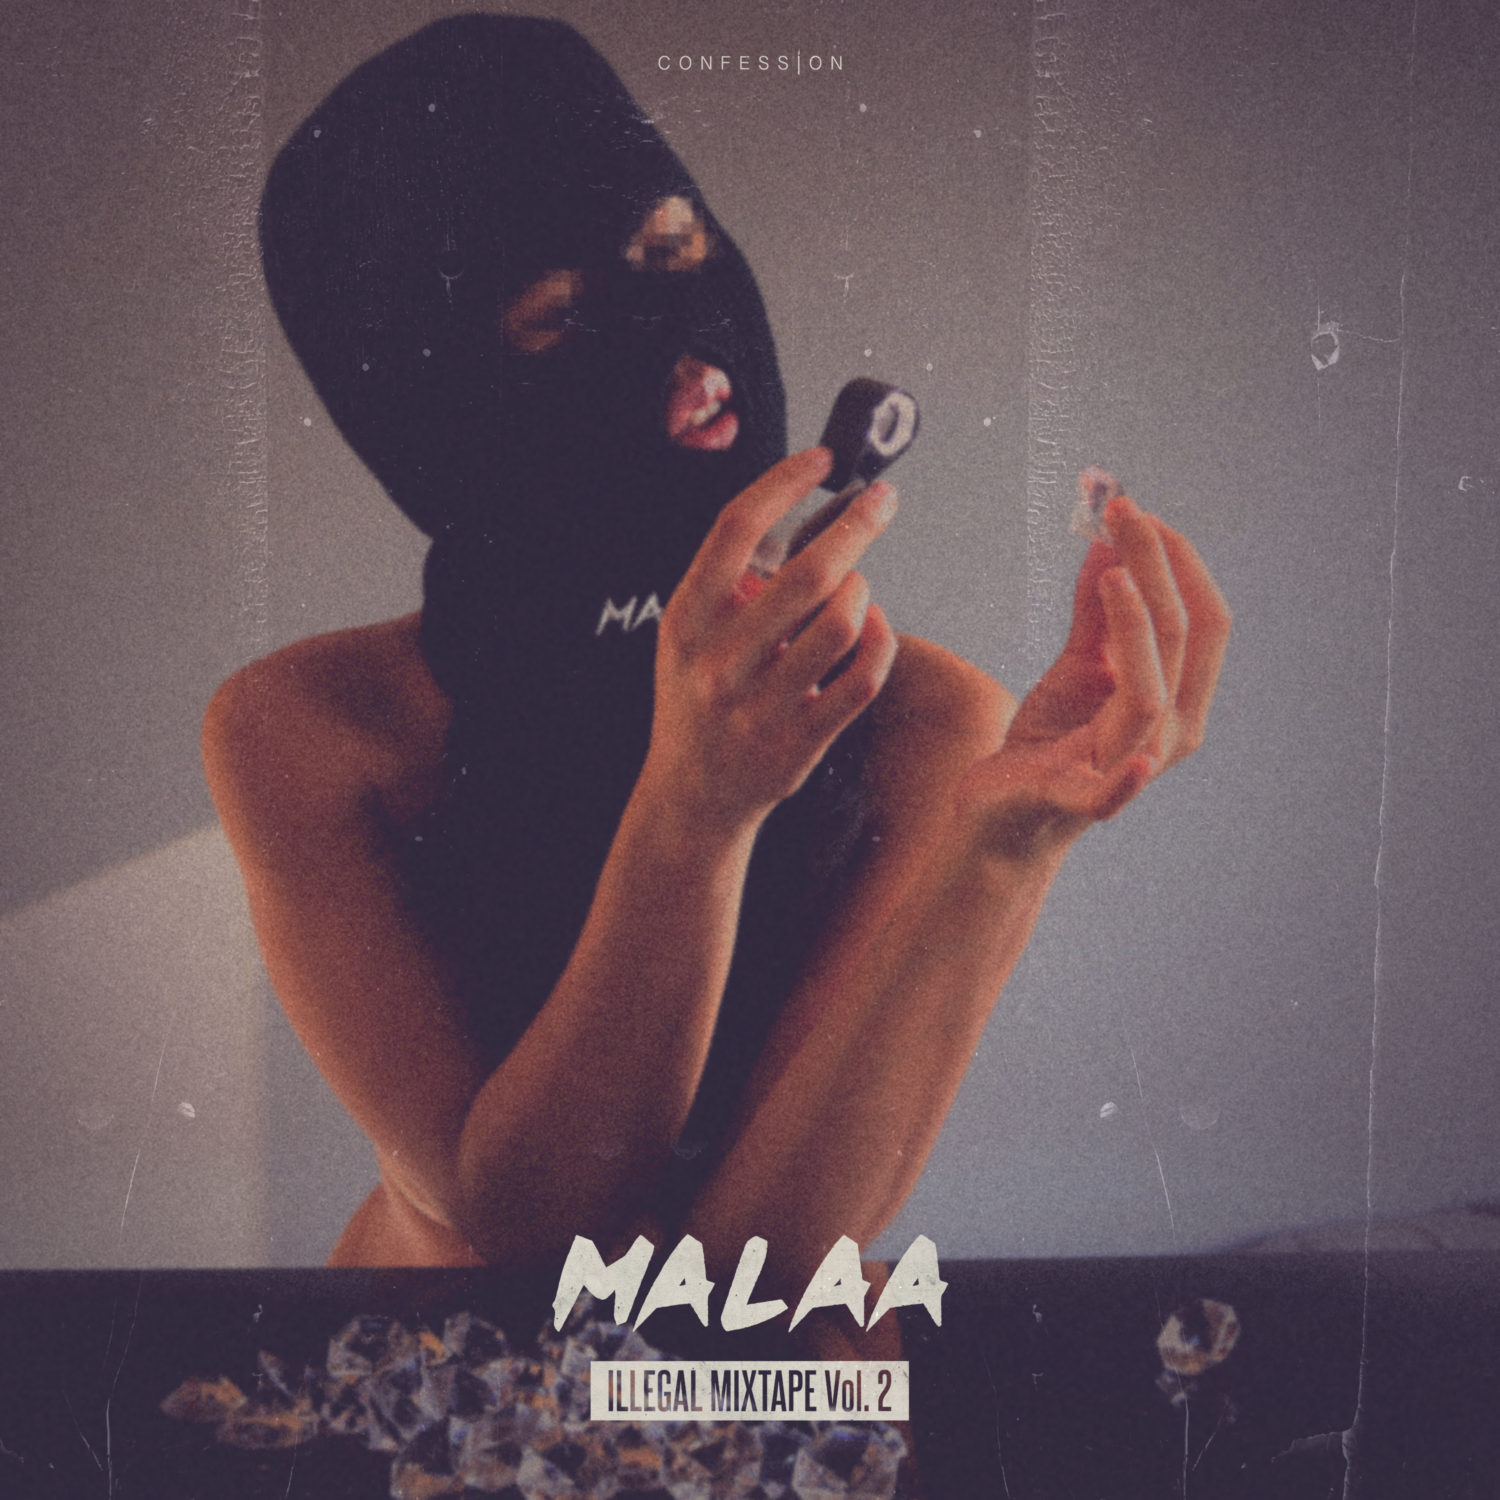 Malaa Illegal Mixtape vol 2